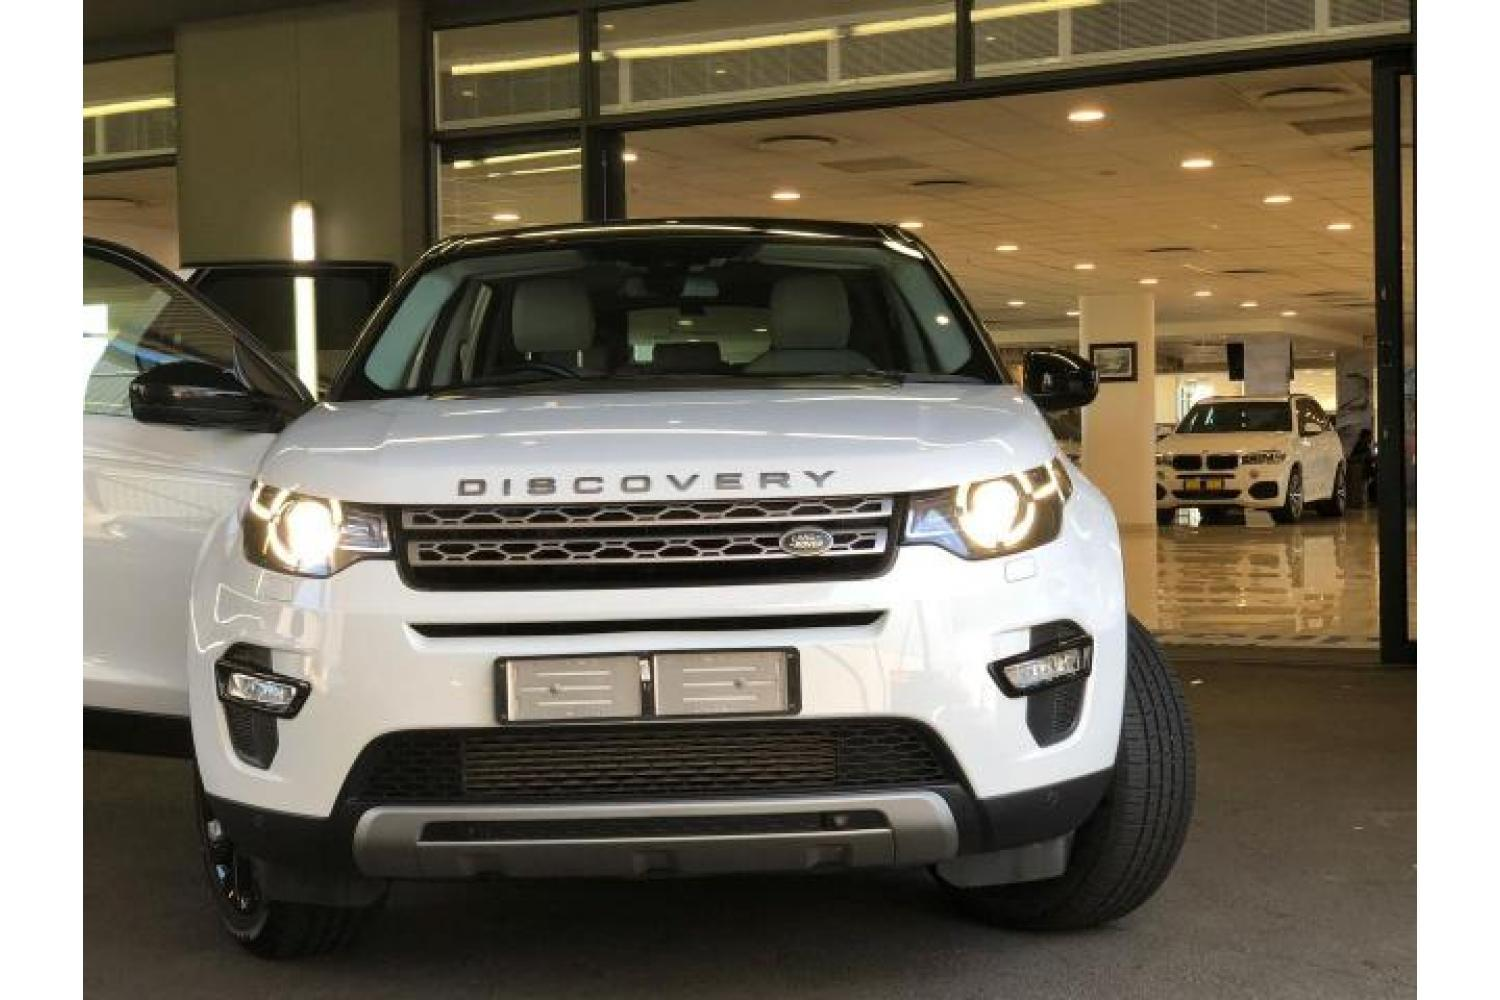 2015 Landrover Discovery Sport 2.2 SD4 Hse - Rent to own